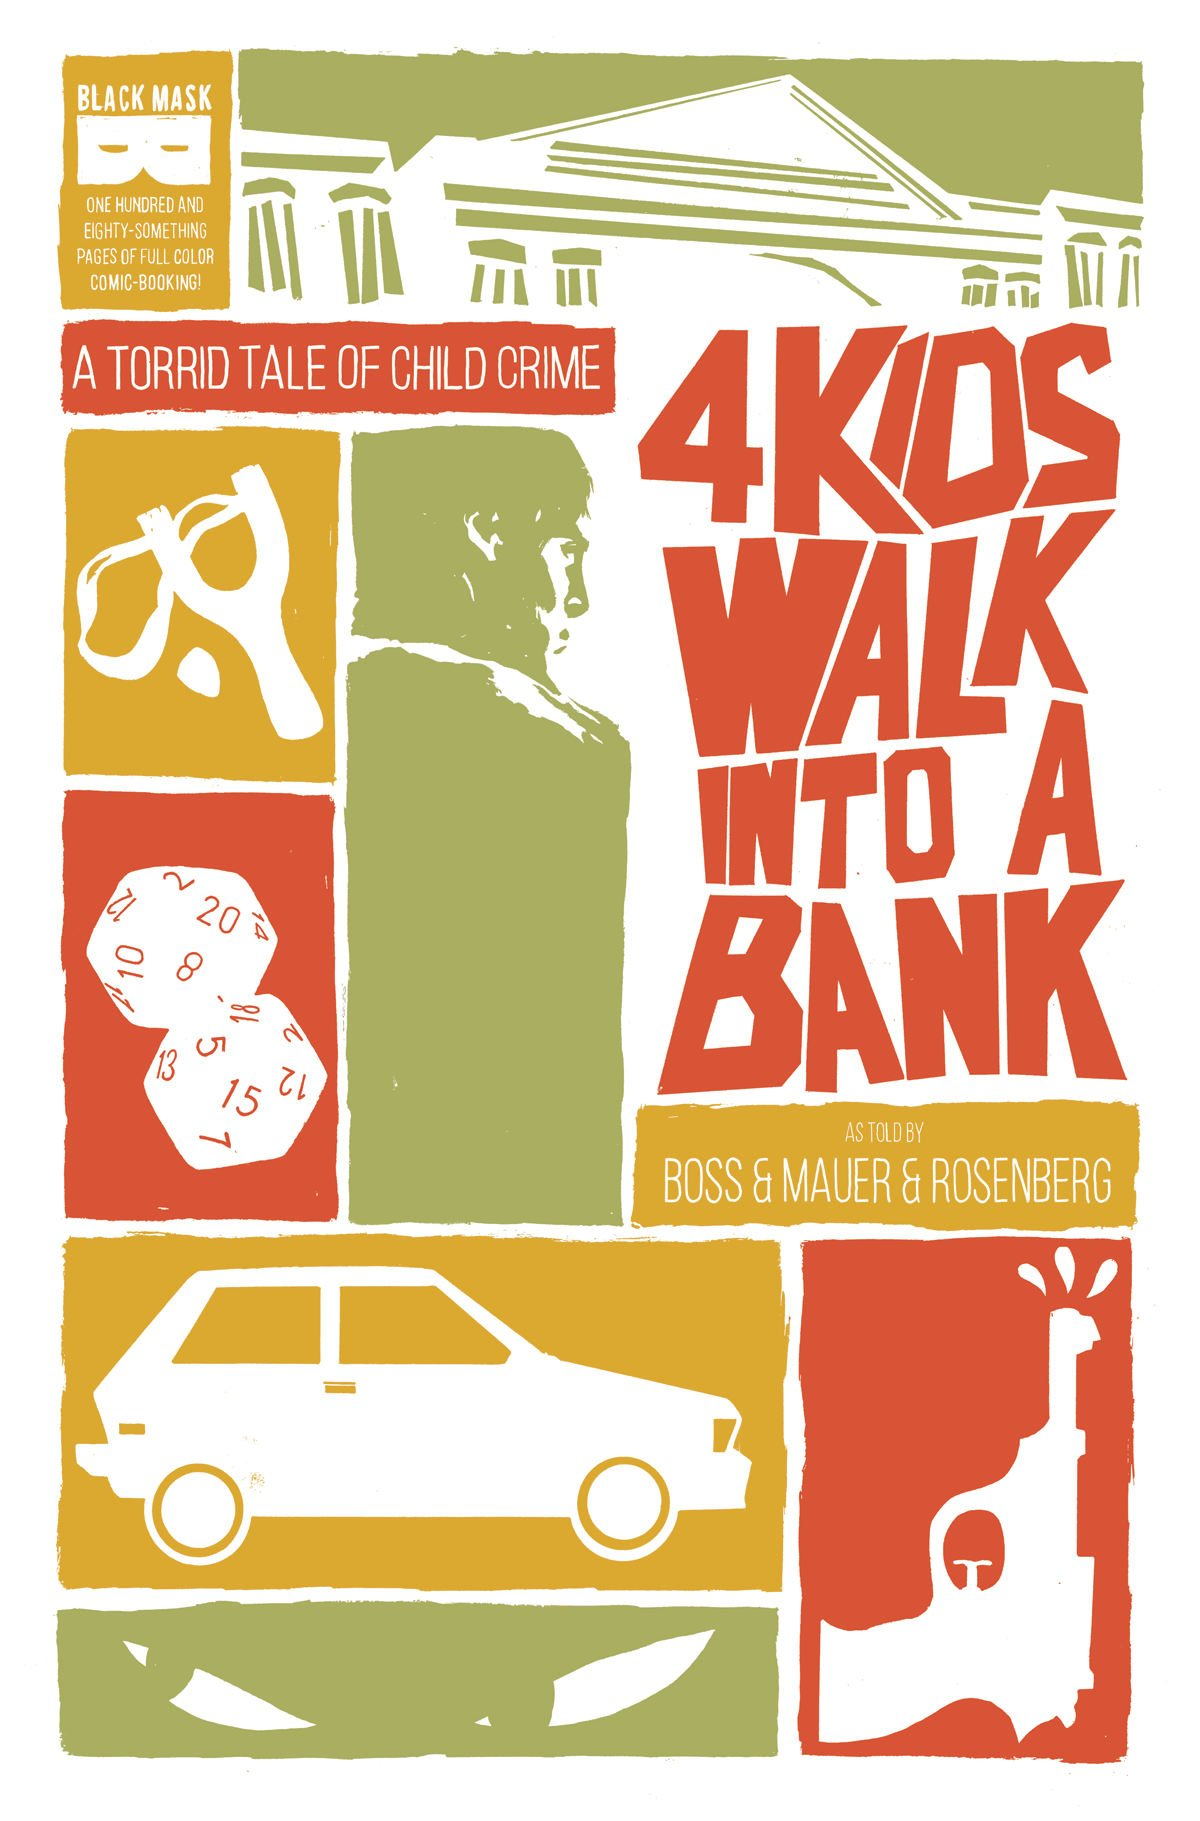 24) 4 Kids Walk Into a Bank - 4 Kids Walk Into a Bank is a lot of things, but if nothing else it's a love letter and homage to pop culture, the 80's, and coming of age stories (you can read all about the influences on the novel here). At it's core, 4 Kids Walk Into a Bank depicts a wonderful, skewed, and identifiable portrayal of what it means to be a hero to friends and family as a child. The less you know about the story the better, but rest assured it's incredibly touching, fun, clever, and unique.